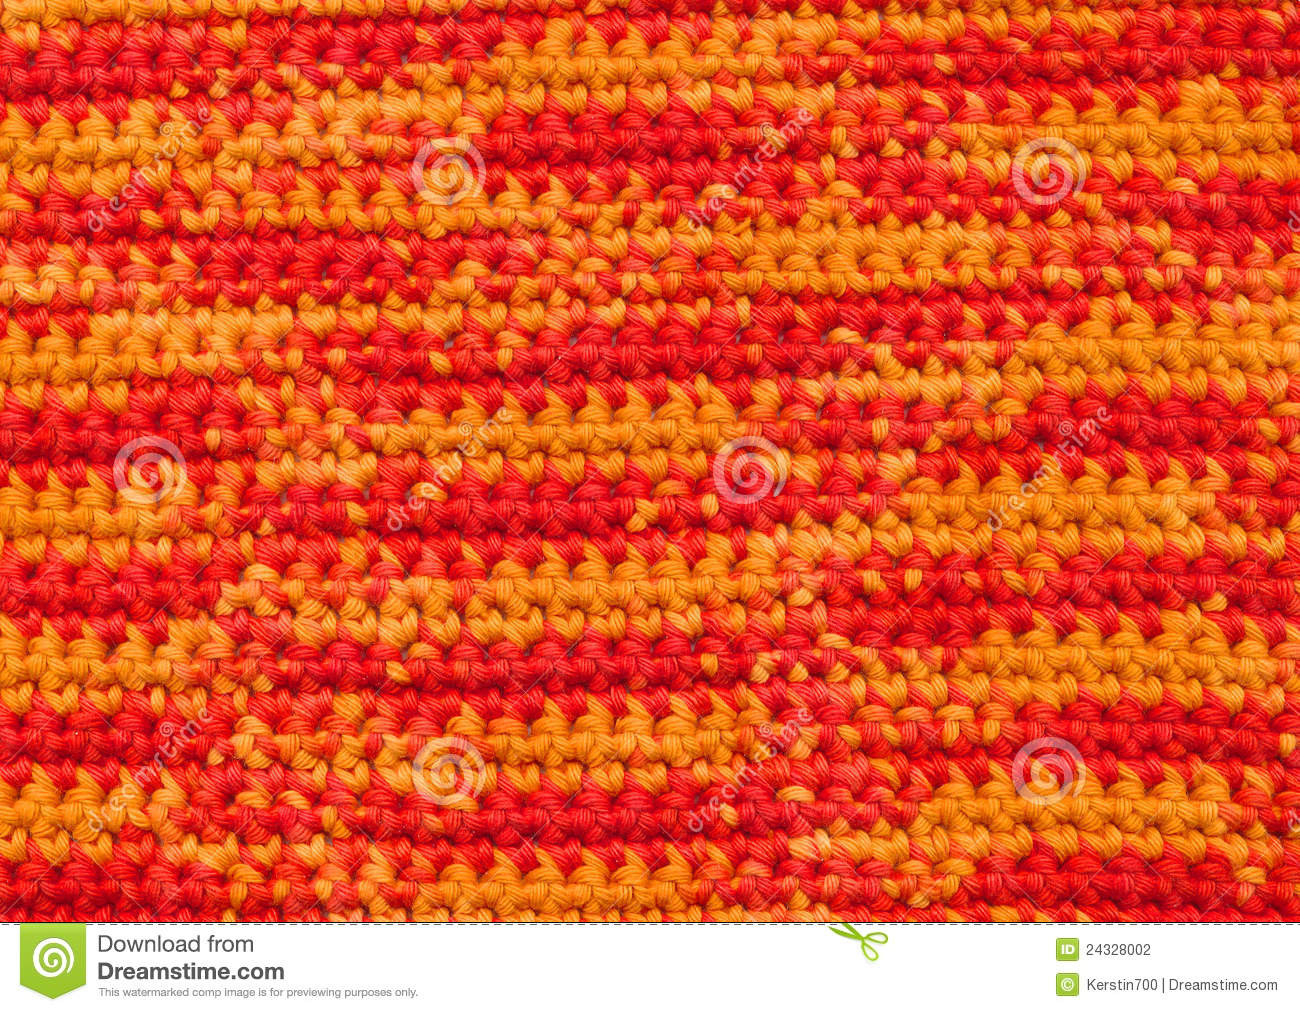 Best Of Background Crochet Variegated Yarn Stock Image Variegated Yarn Crochet Of Incredible 46 Images Variegated Yarn Crochet